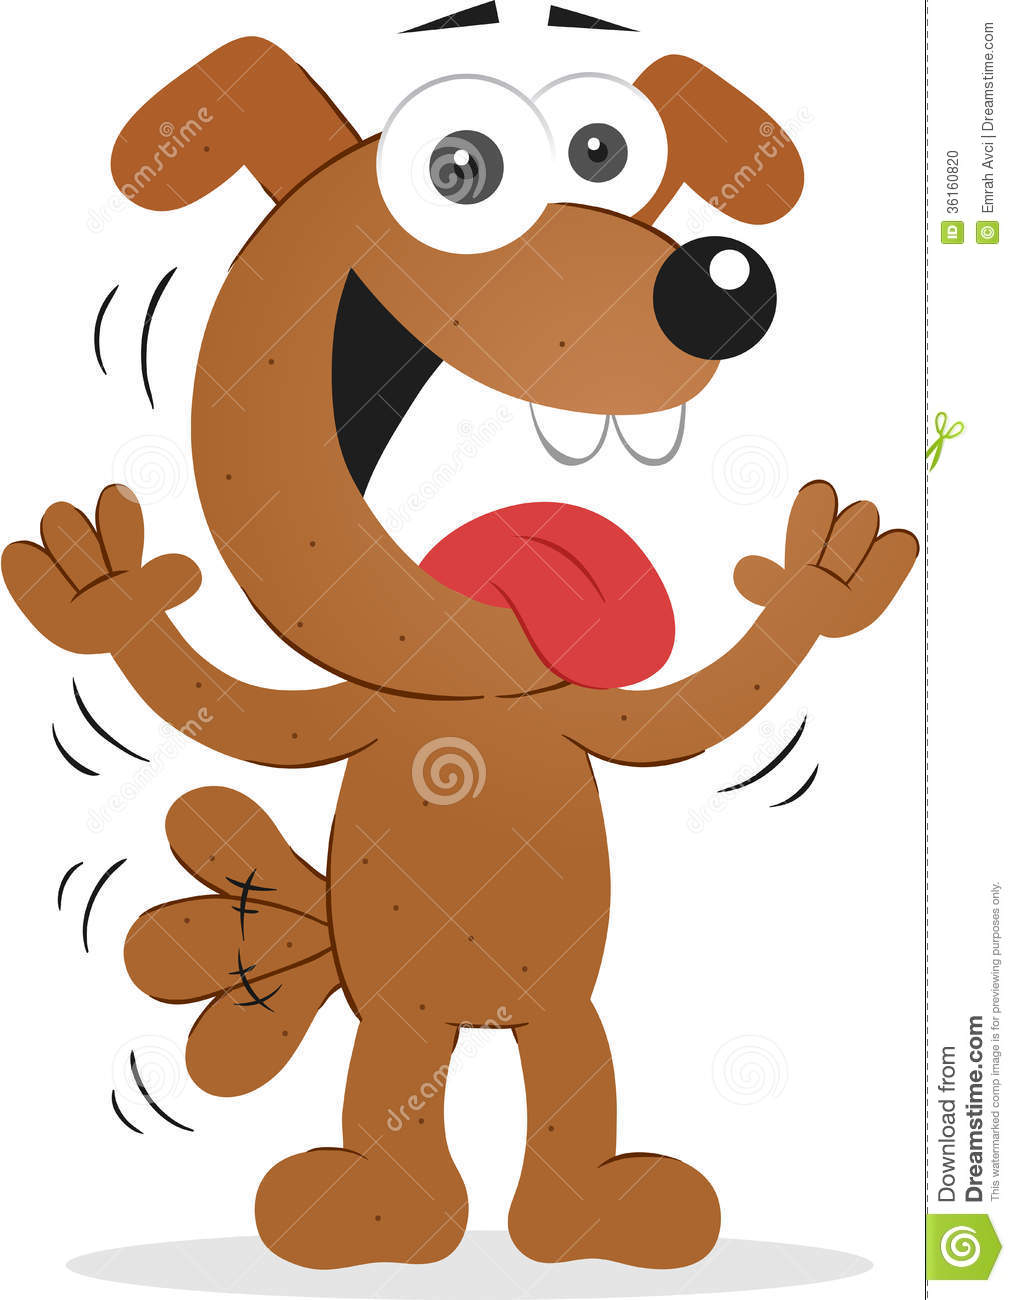 Cartoon funny dog happy with wagging tail.